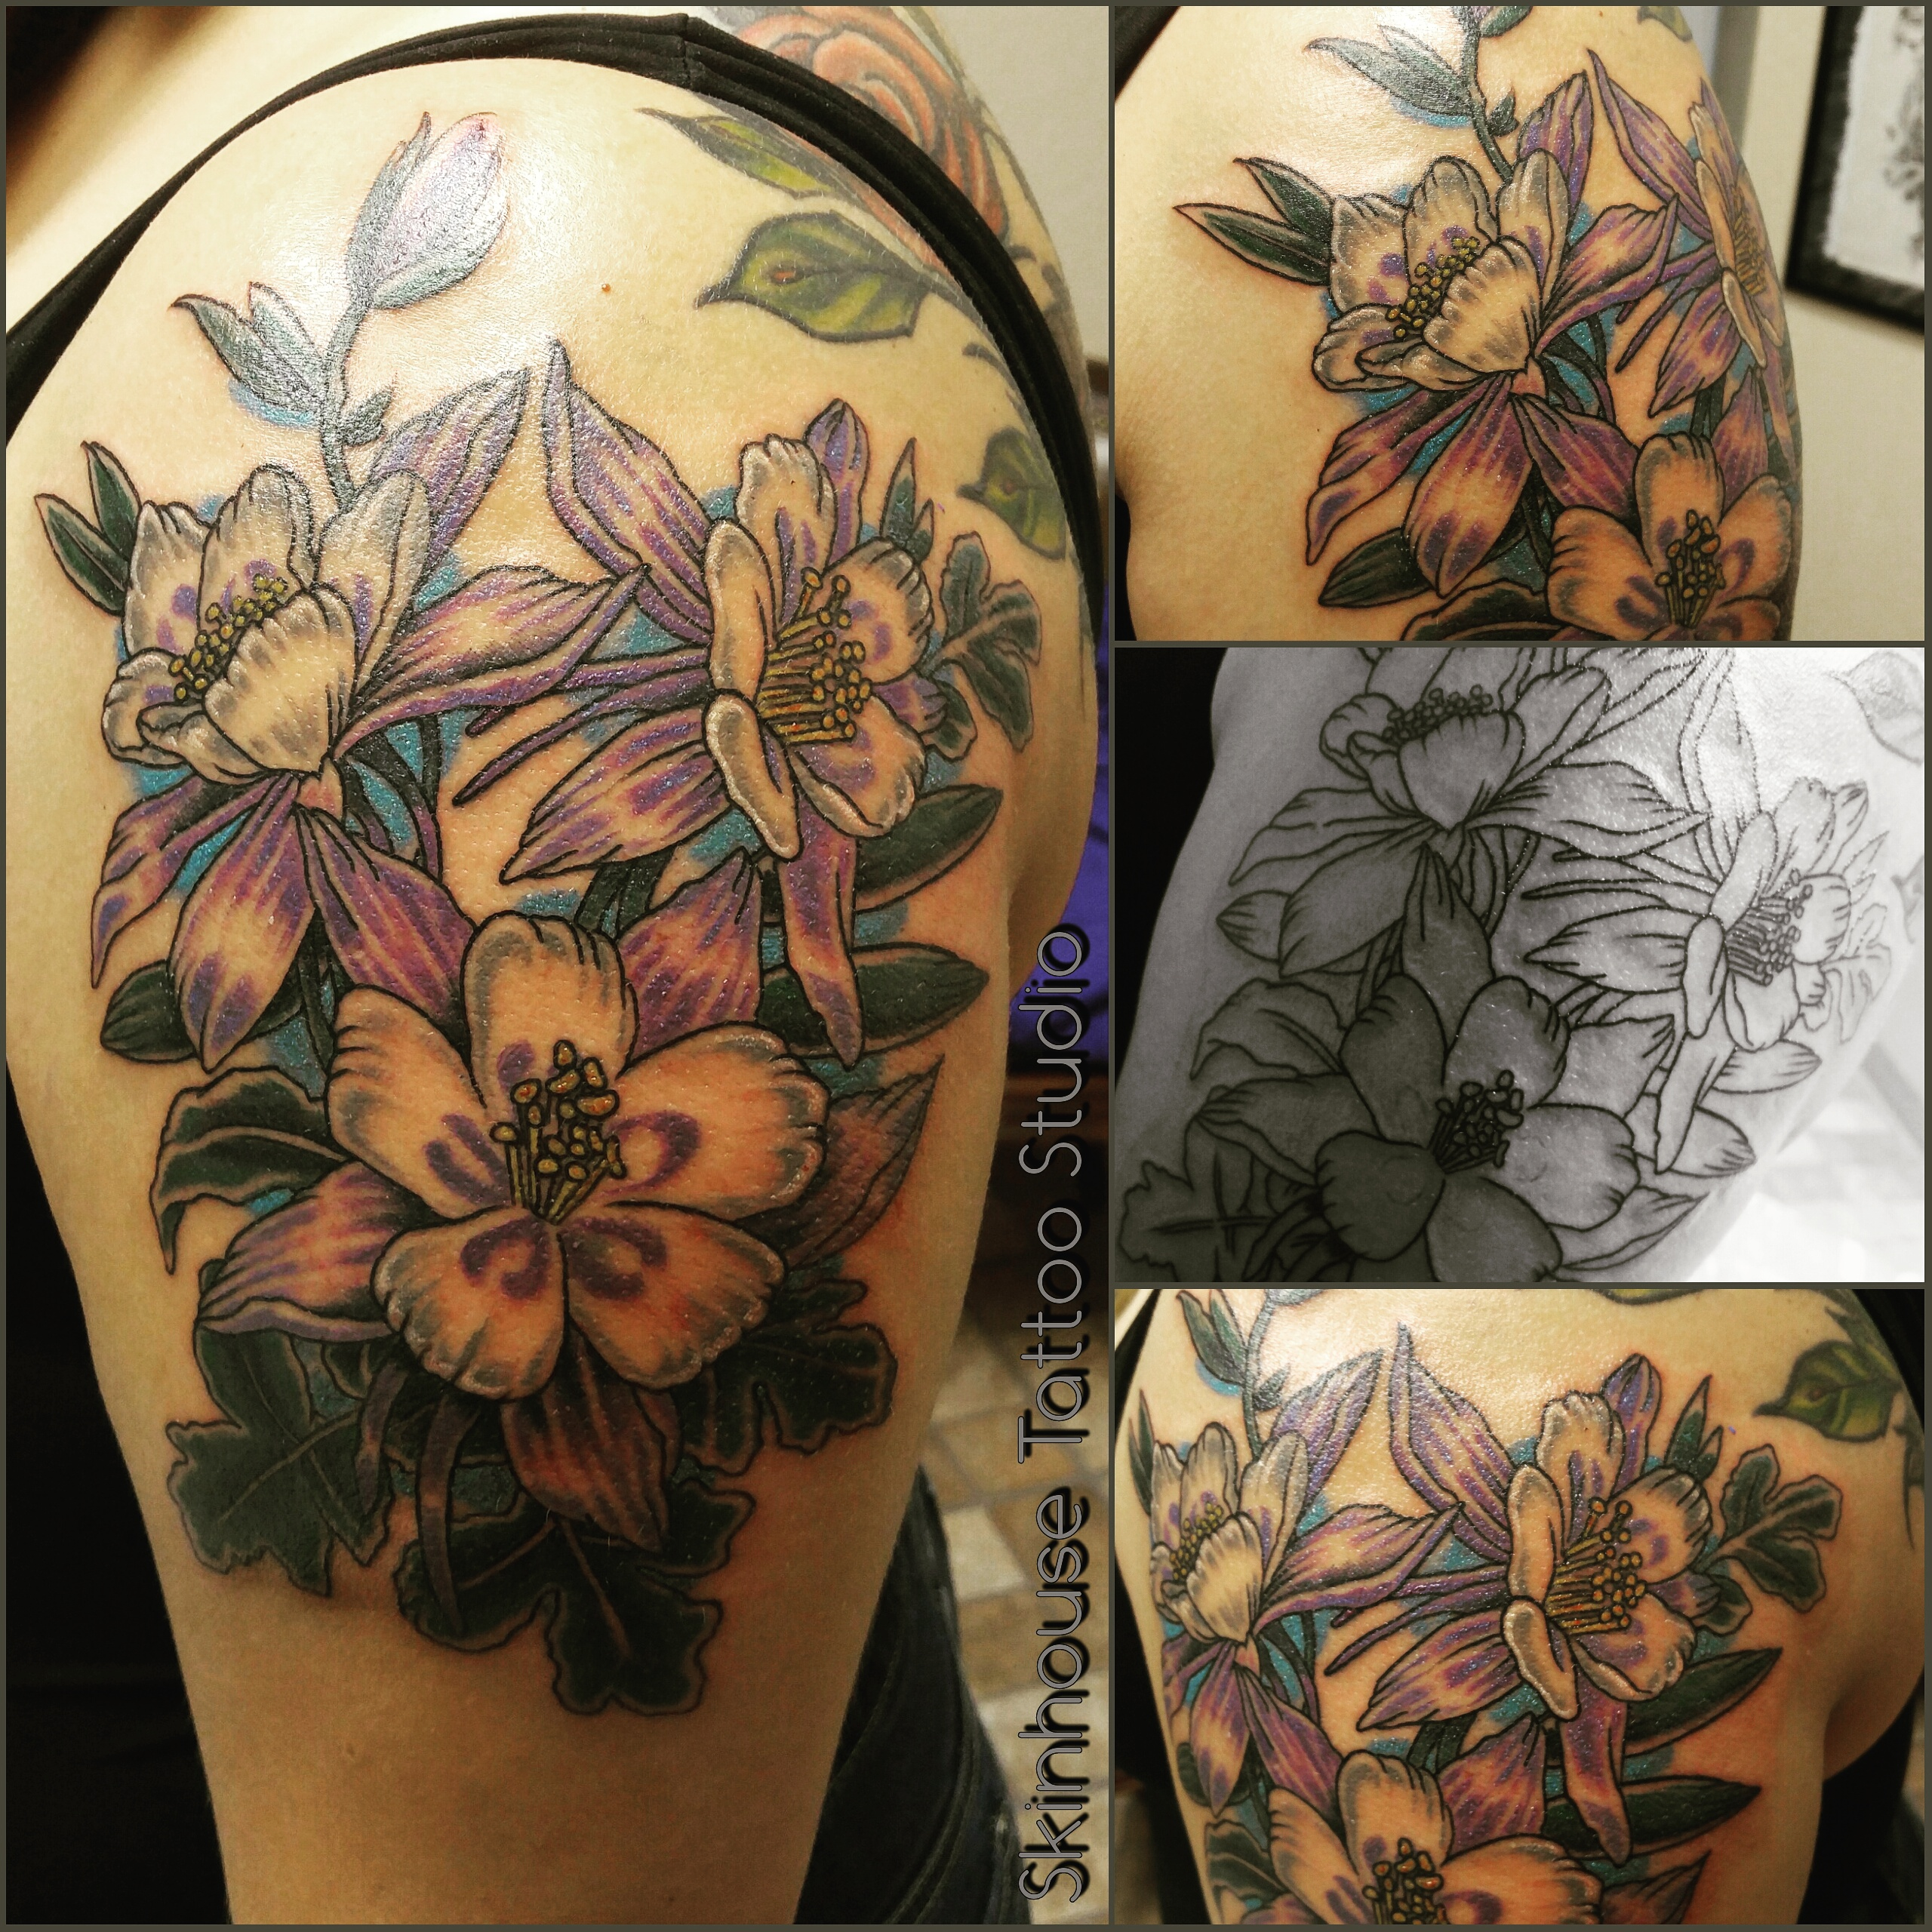 Colorado flower tattoo flowers healthy colorado thank you for the opportunity miss very much enjo this one tattoo done by raul regalado columbines of colorado tattoo skinhouse studio izmirmasajfo